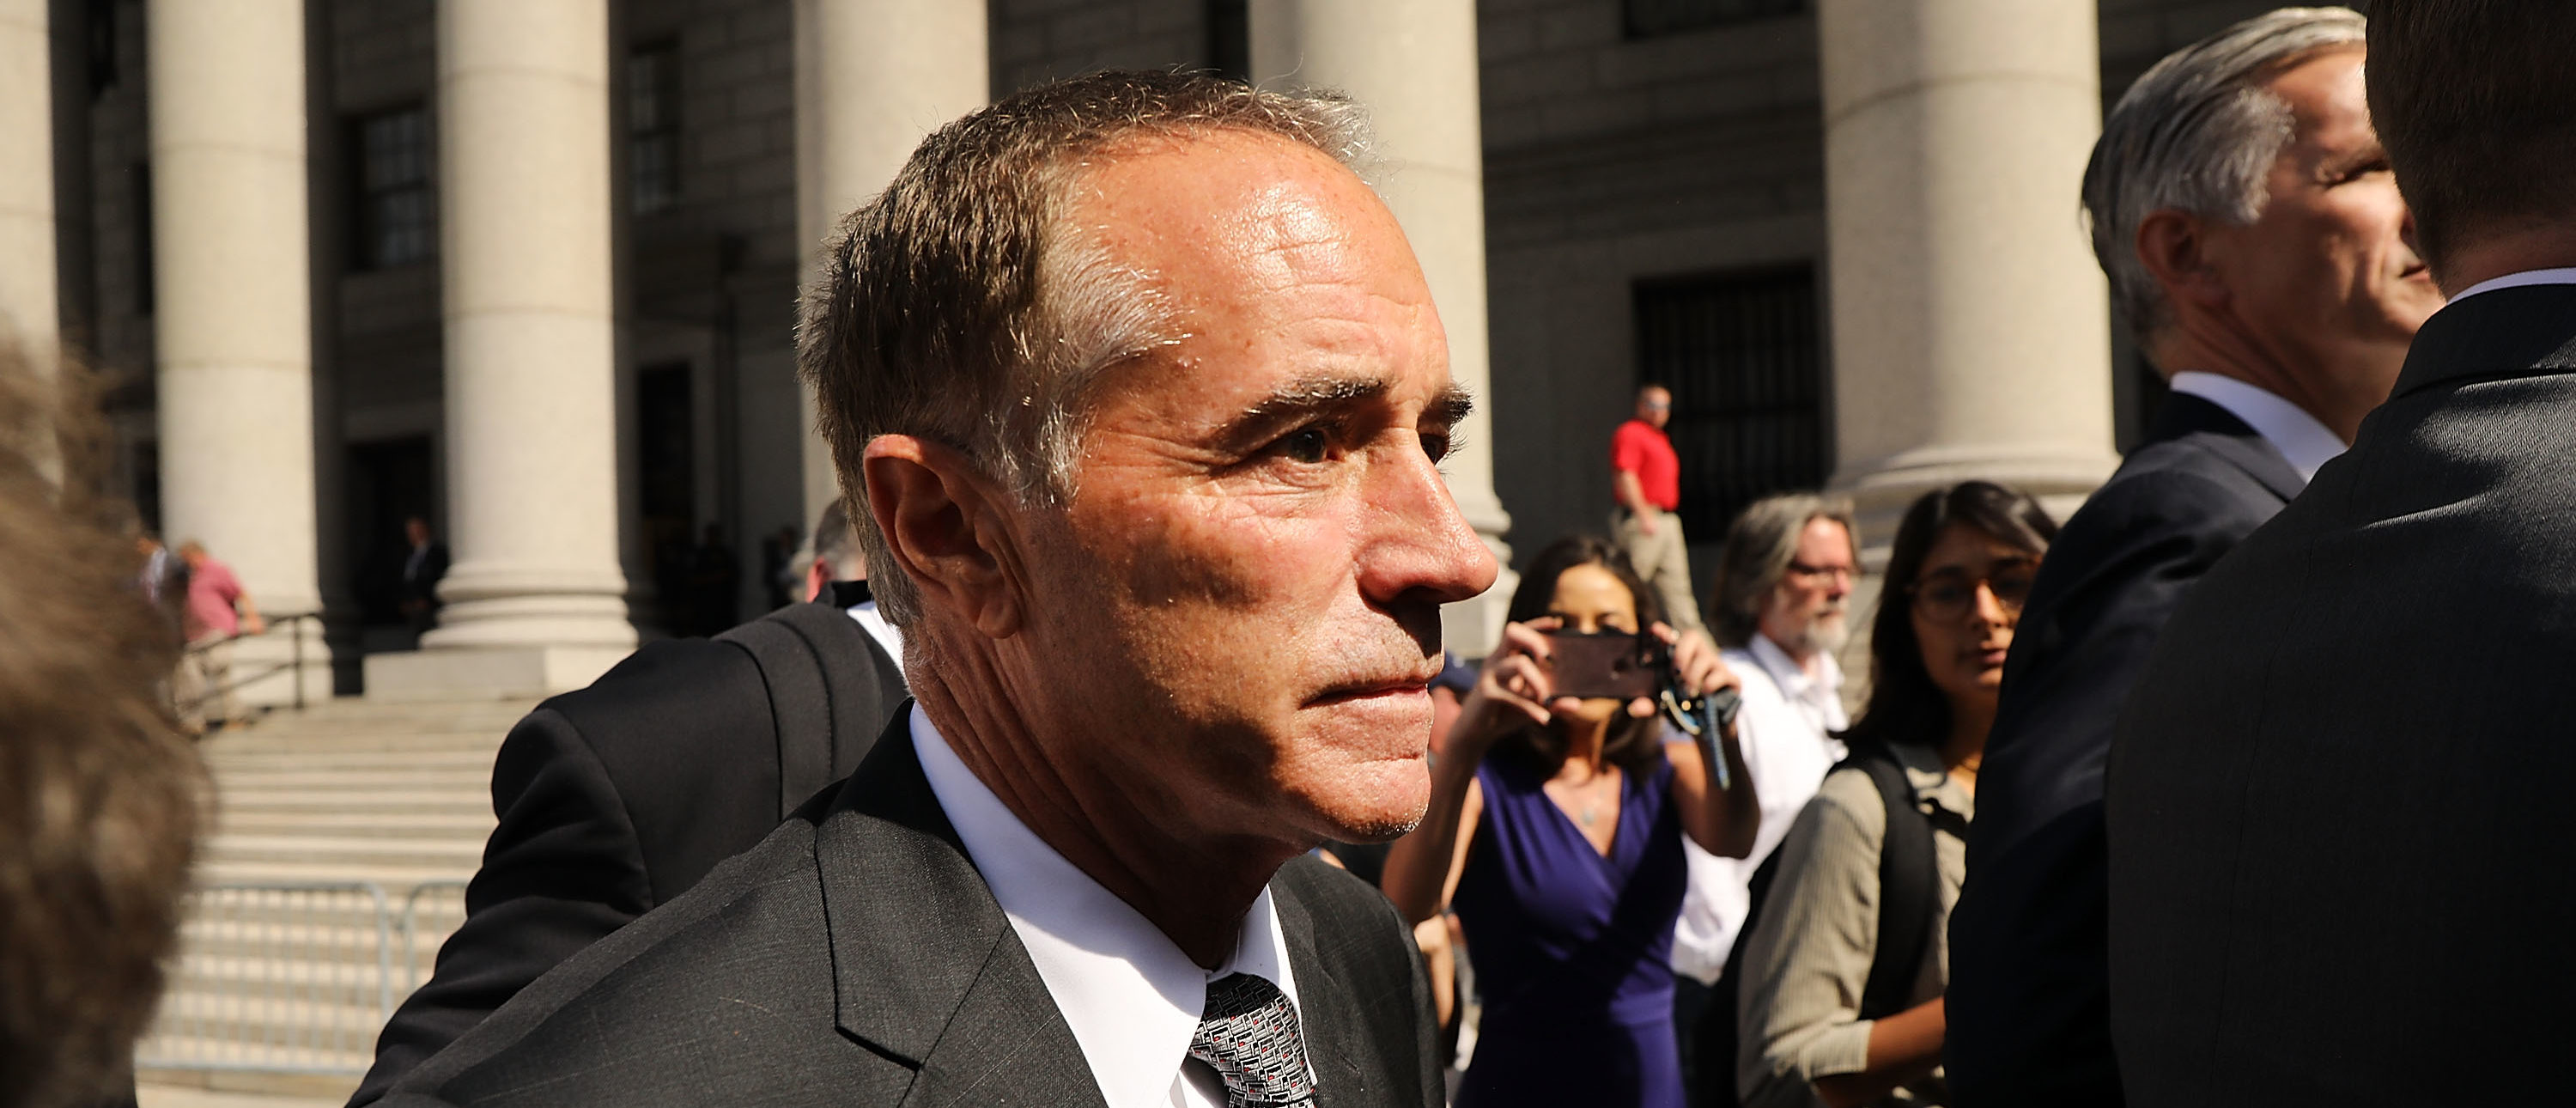 NEW YORK, NY - AUGUST 08: Rep. Chris Collins (R-NY) walks out of a New York court house after being charged with insider trading on August 8, 2018 in New York City. Federal prosecutors have charged Collins, one of President Trump's earliest congressional supporters, with securities fraud, accusing the congressman and his son of using inside information about a biotechnology company to make illicit stock trades. (Photo by Spencer Platt/Getty Images)